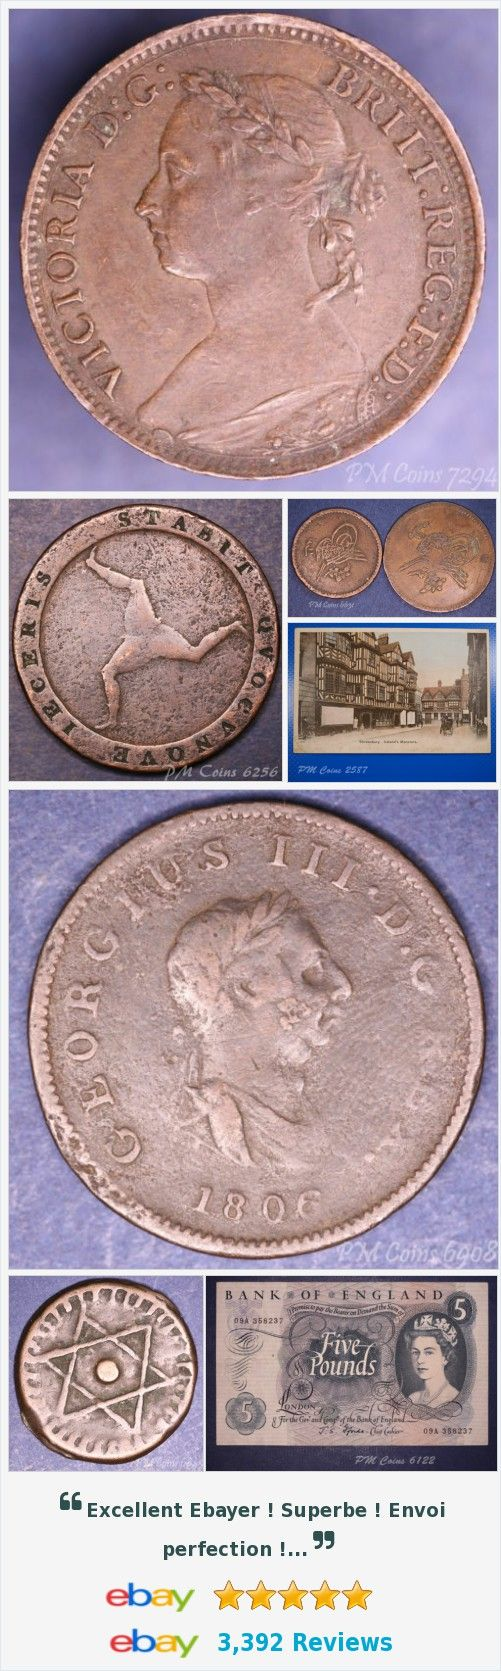 Ireland - Coins and Banknotes, Irish Coins - decimal items in PM Coin Shop store on eBay! http://stores.ebay.co.uk/PM-Coin-Shop/_i.html?rt=nc&_sid=1083015530&_trksid=p4634.c0.m14.l1513&_pgn=4